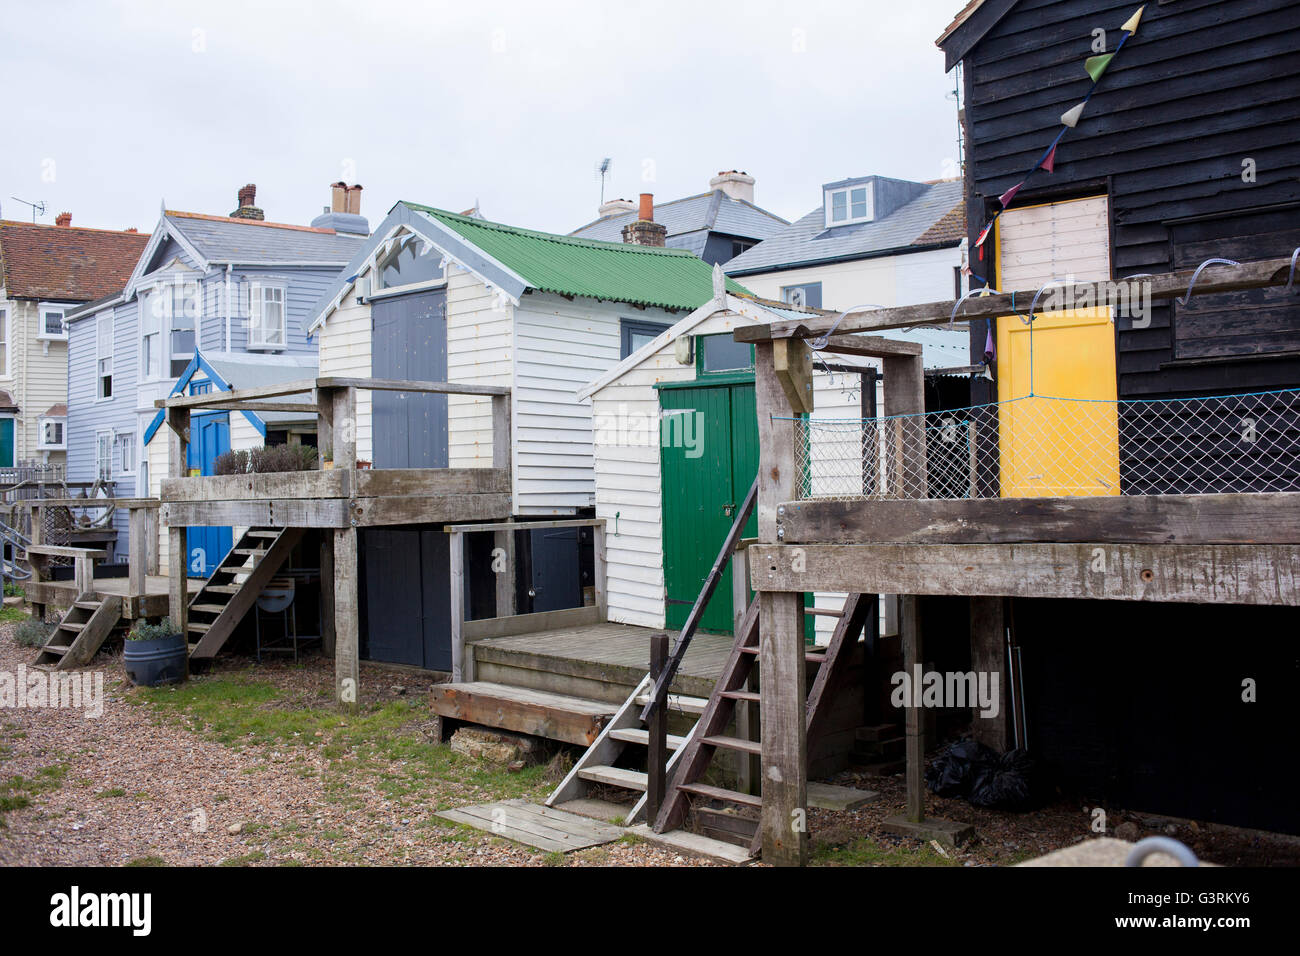 A row of beach and fishing huts along the front in the Kentish fishing town of Whitstable Stock Photo